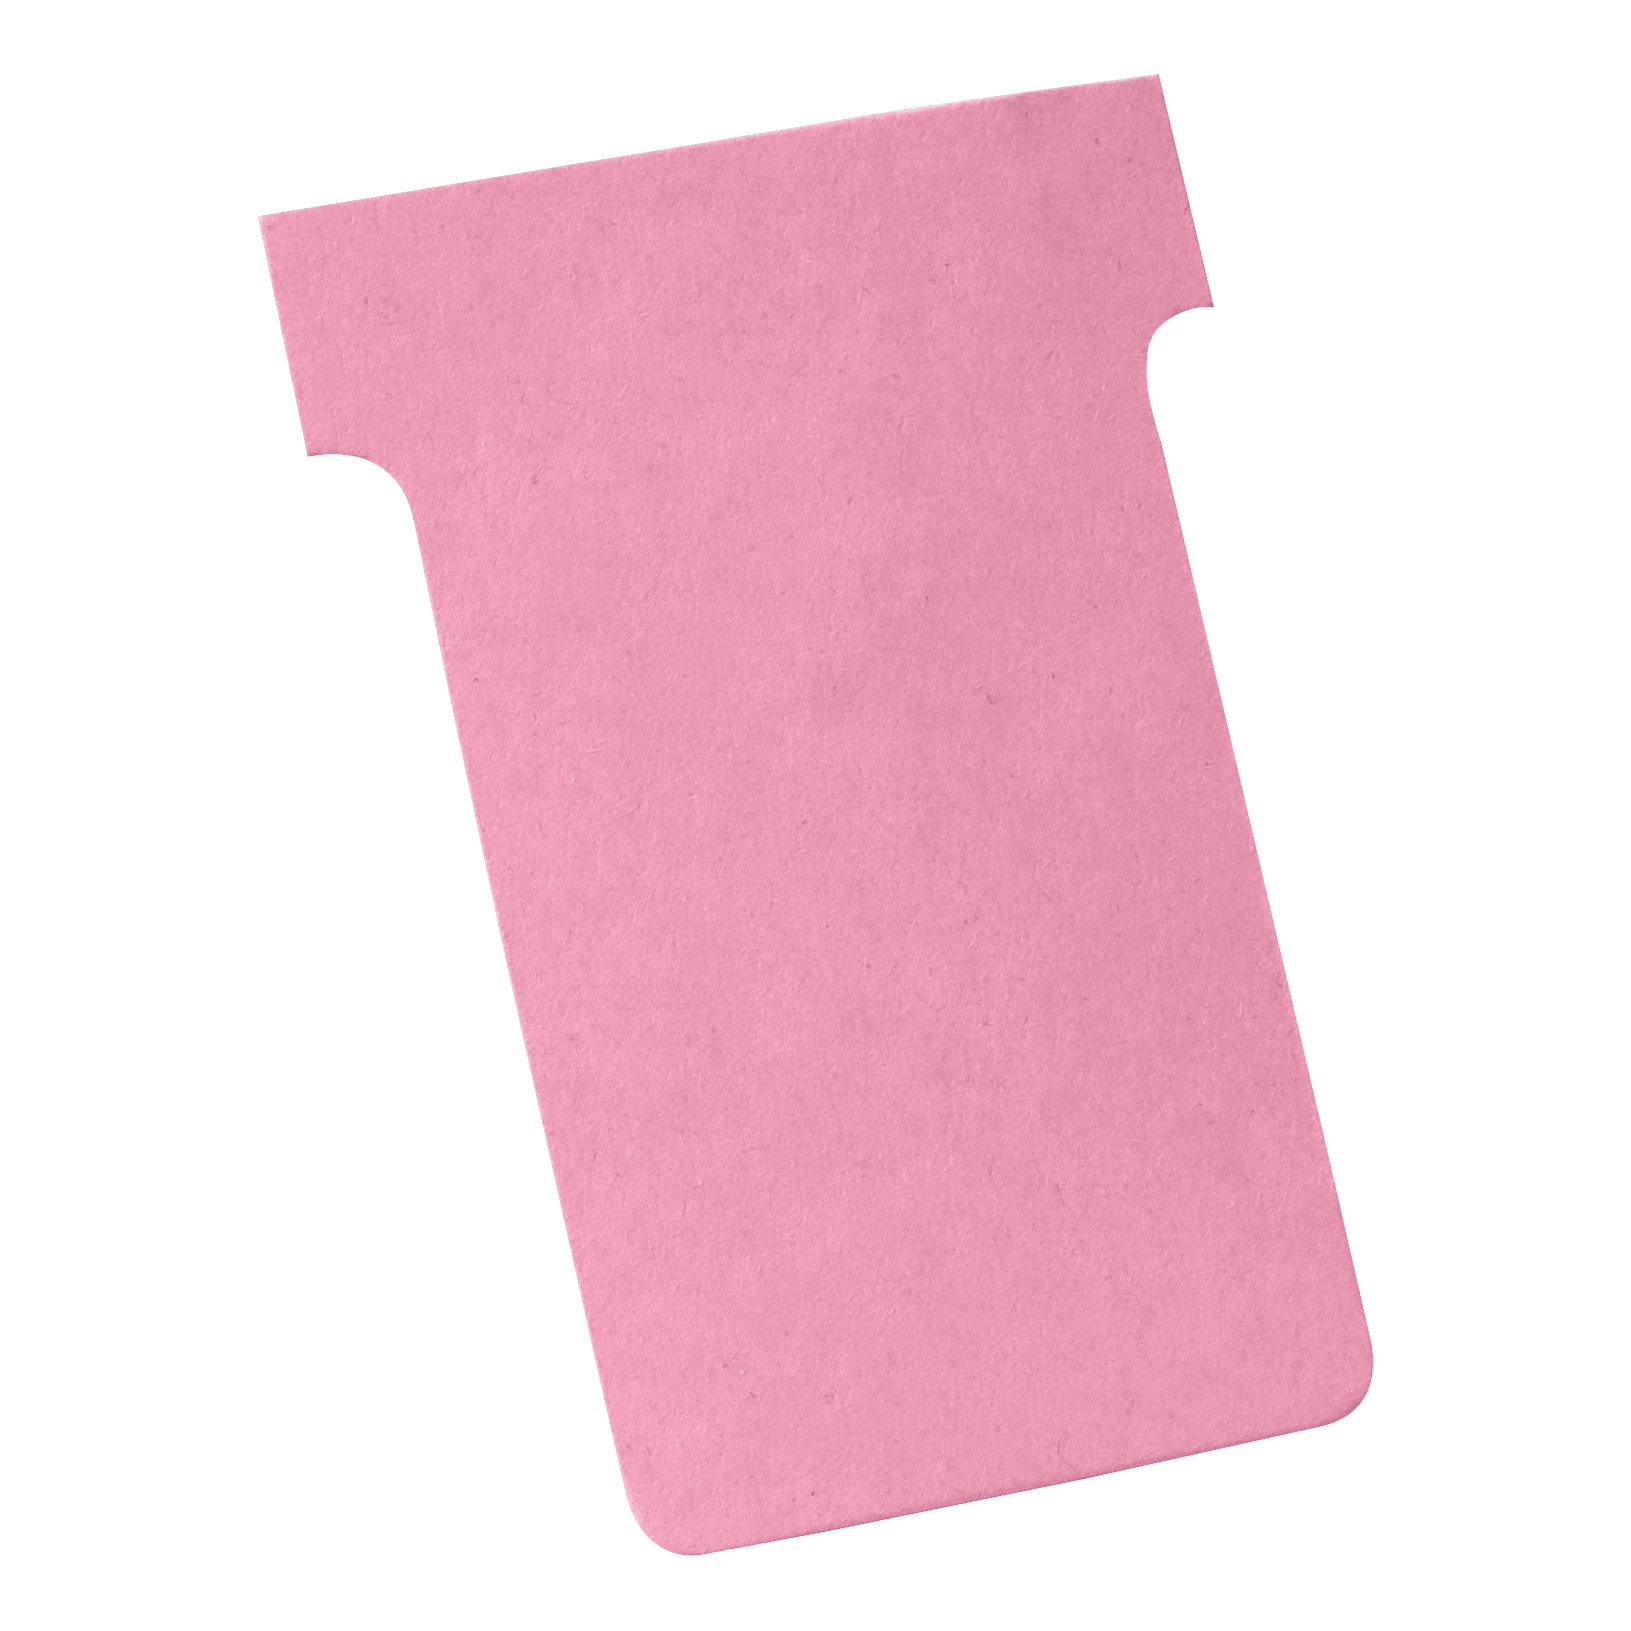 Nobo T-Cards 160gsm Tab Top 15mm W61x Bottom W48.5x Full H86mm Size 2 Pink Ref 2002008 Pack 100